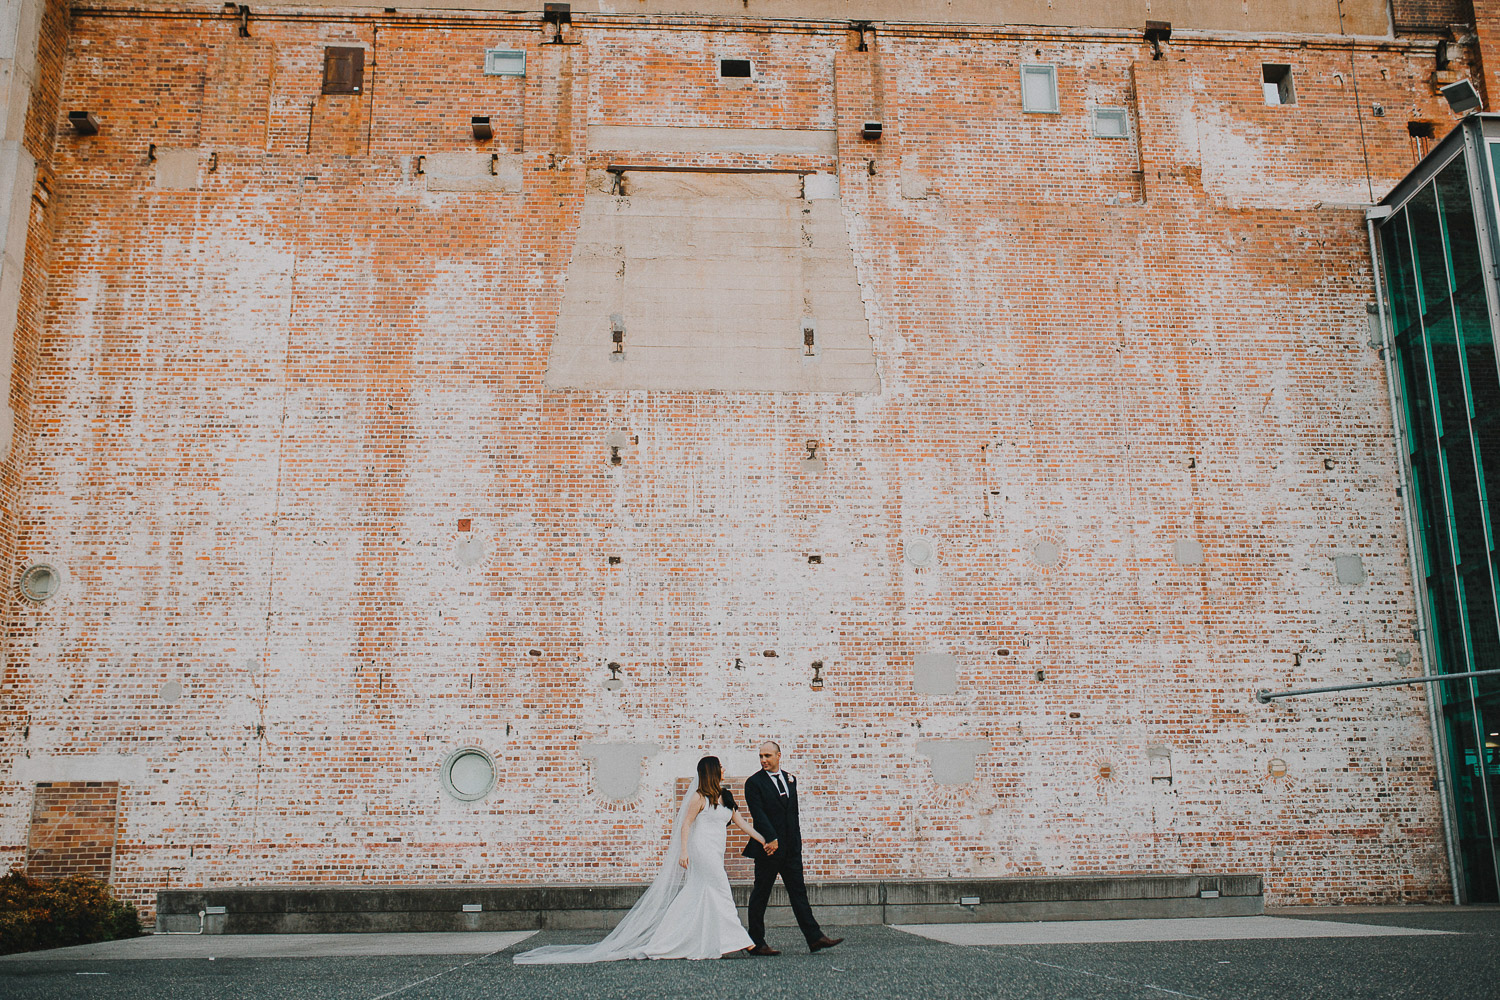 The power station brisbane wedding